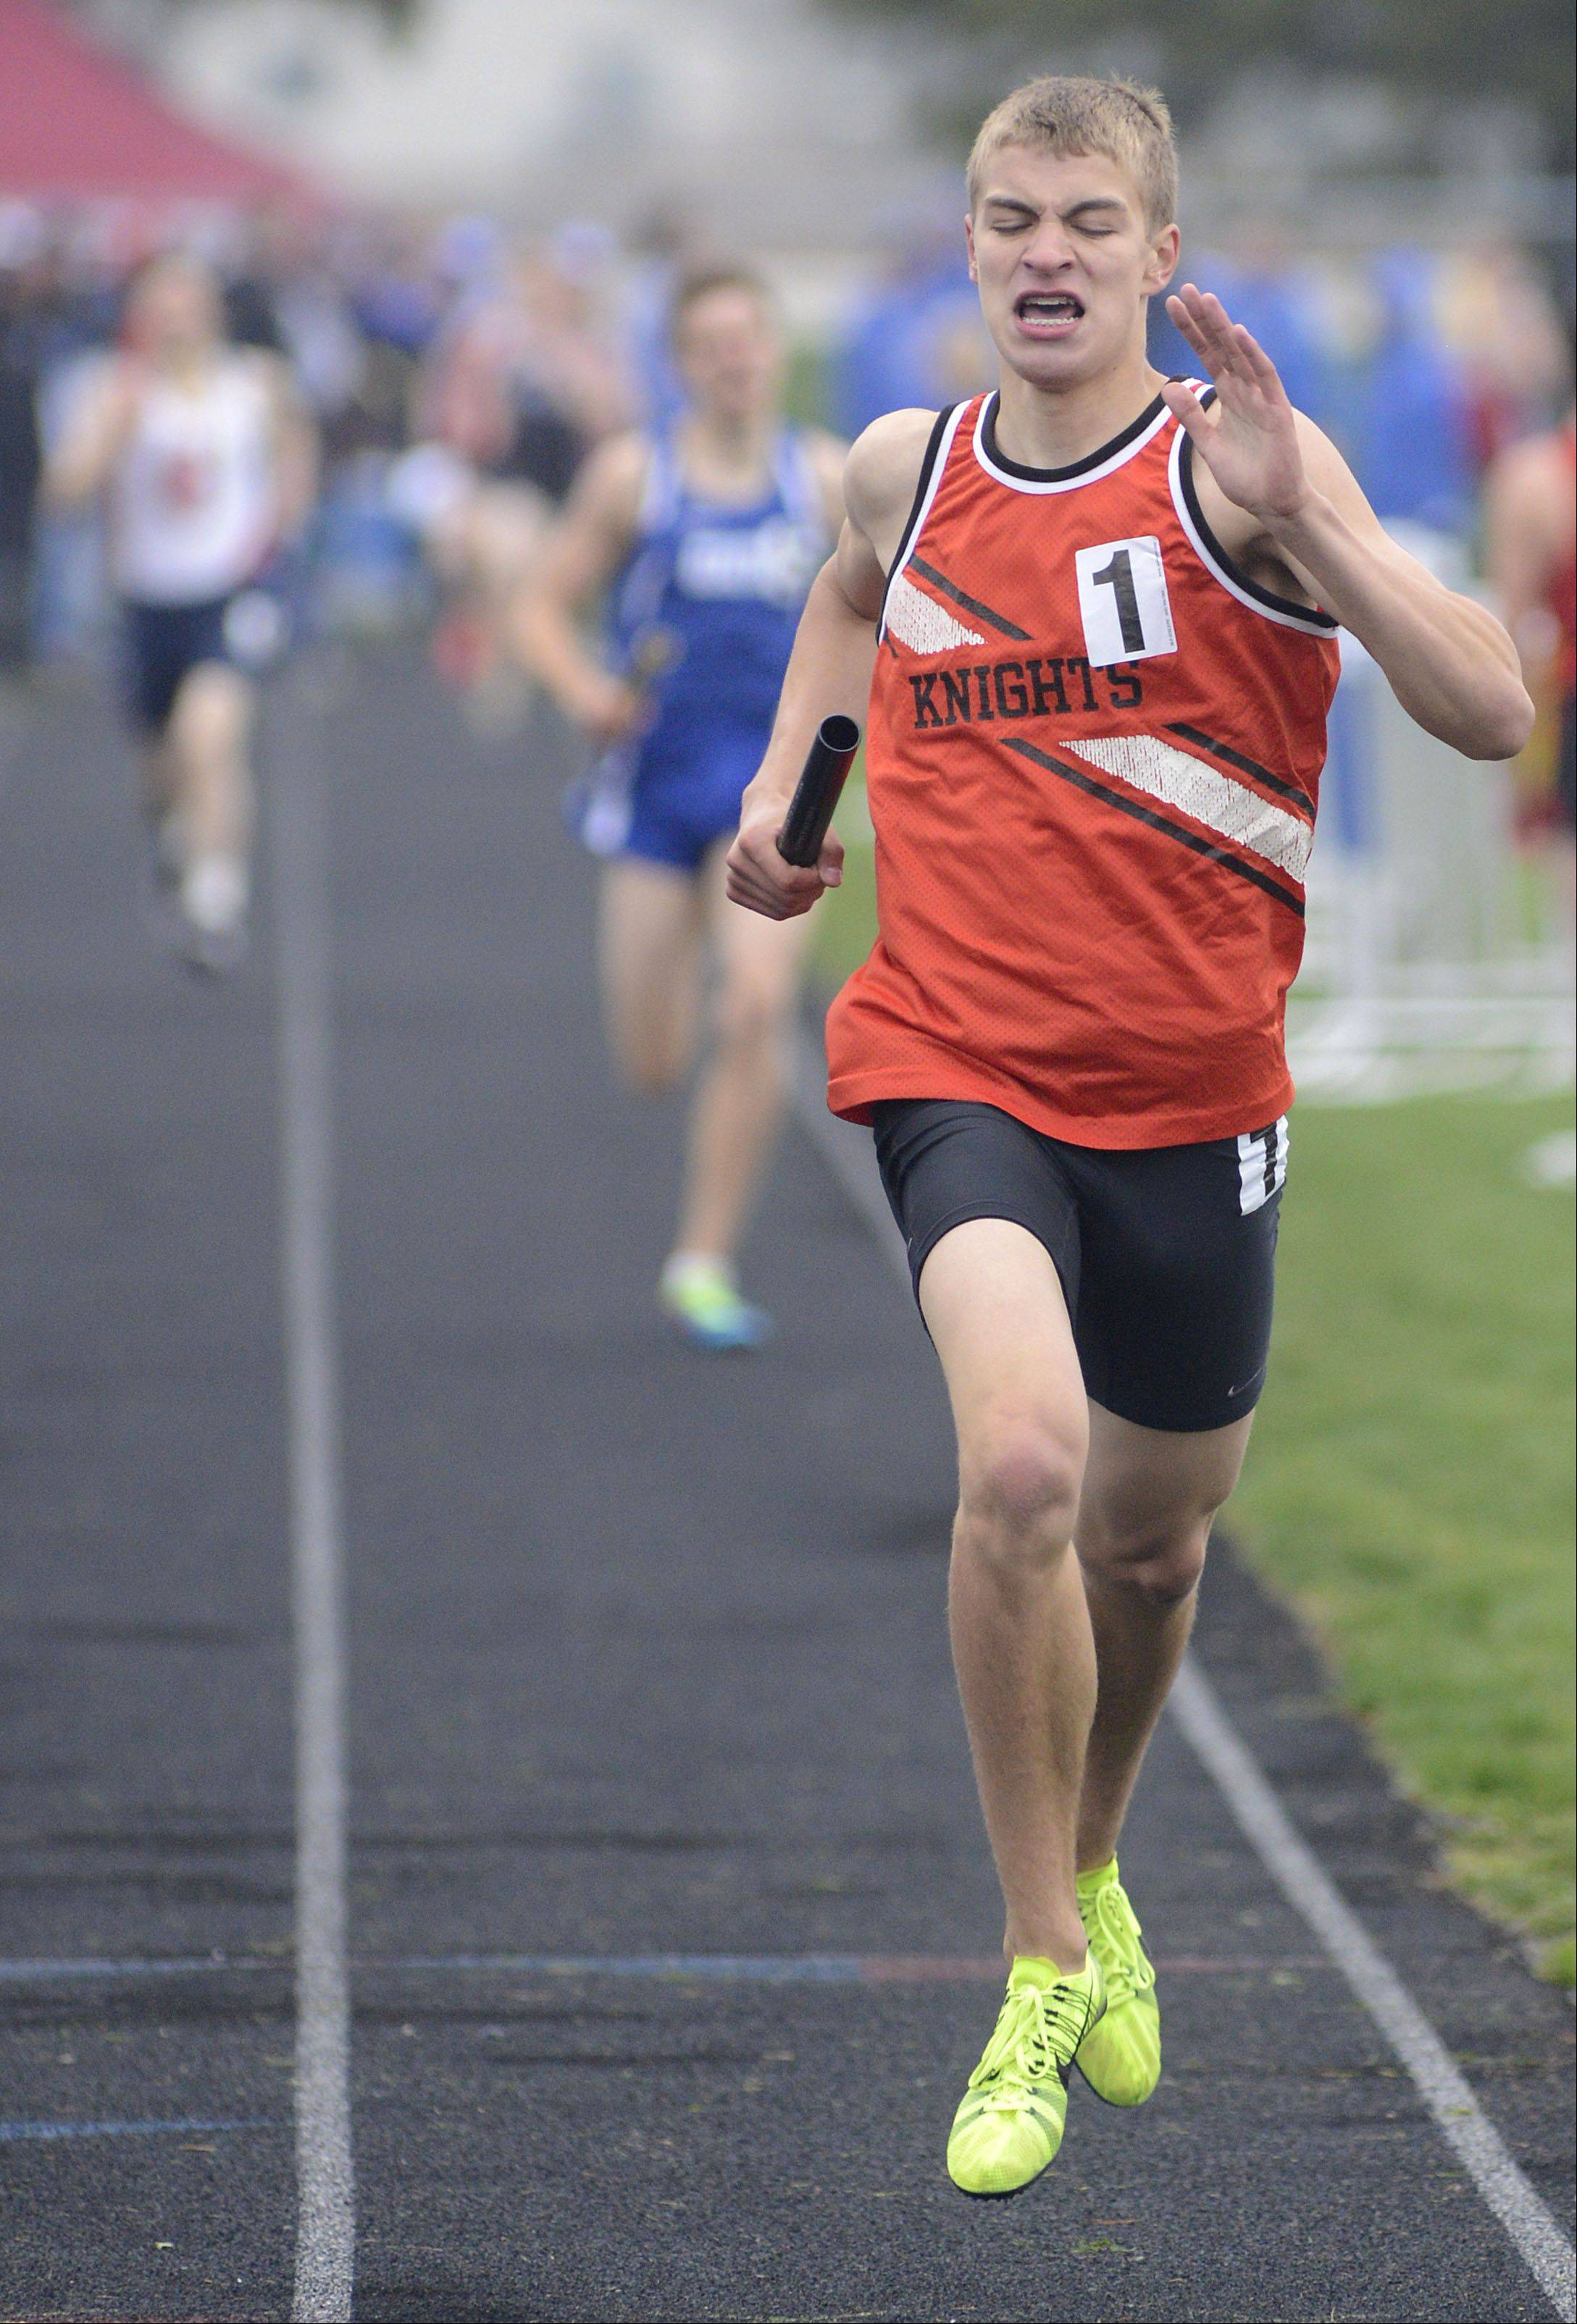 Kaneland's Nathaniel Kucera brings the Knights in with first place in the 4 x 800 meter relay at the Kane County boys track meet at Burlington Central on Friday.